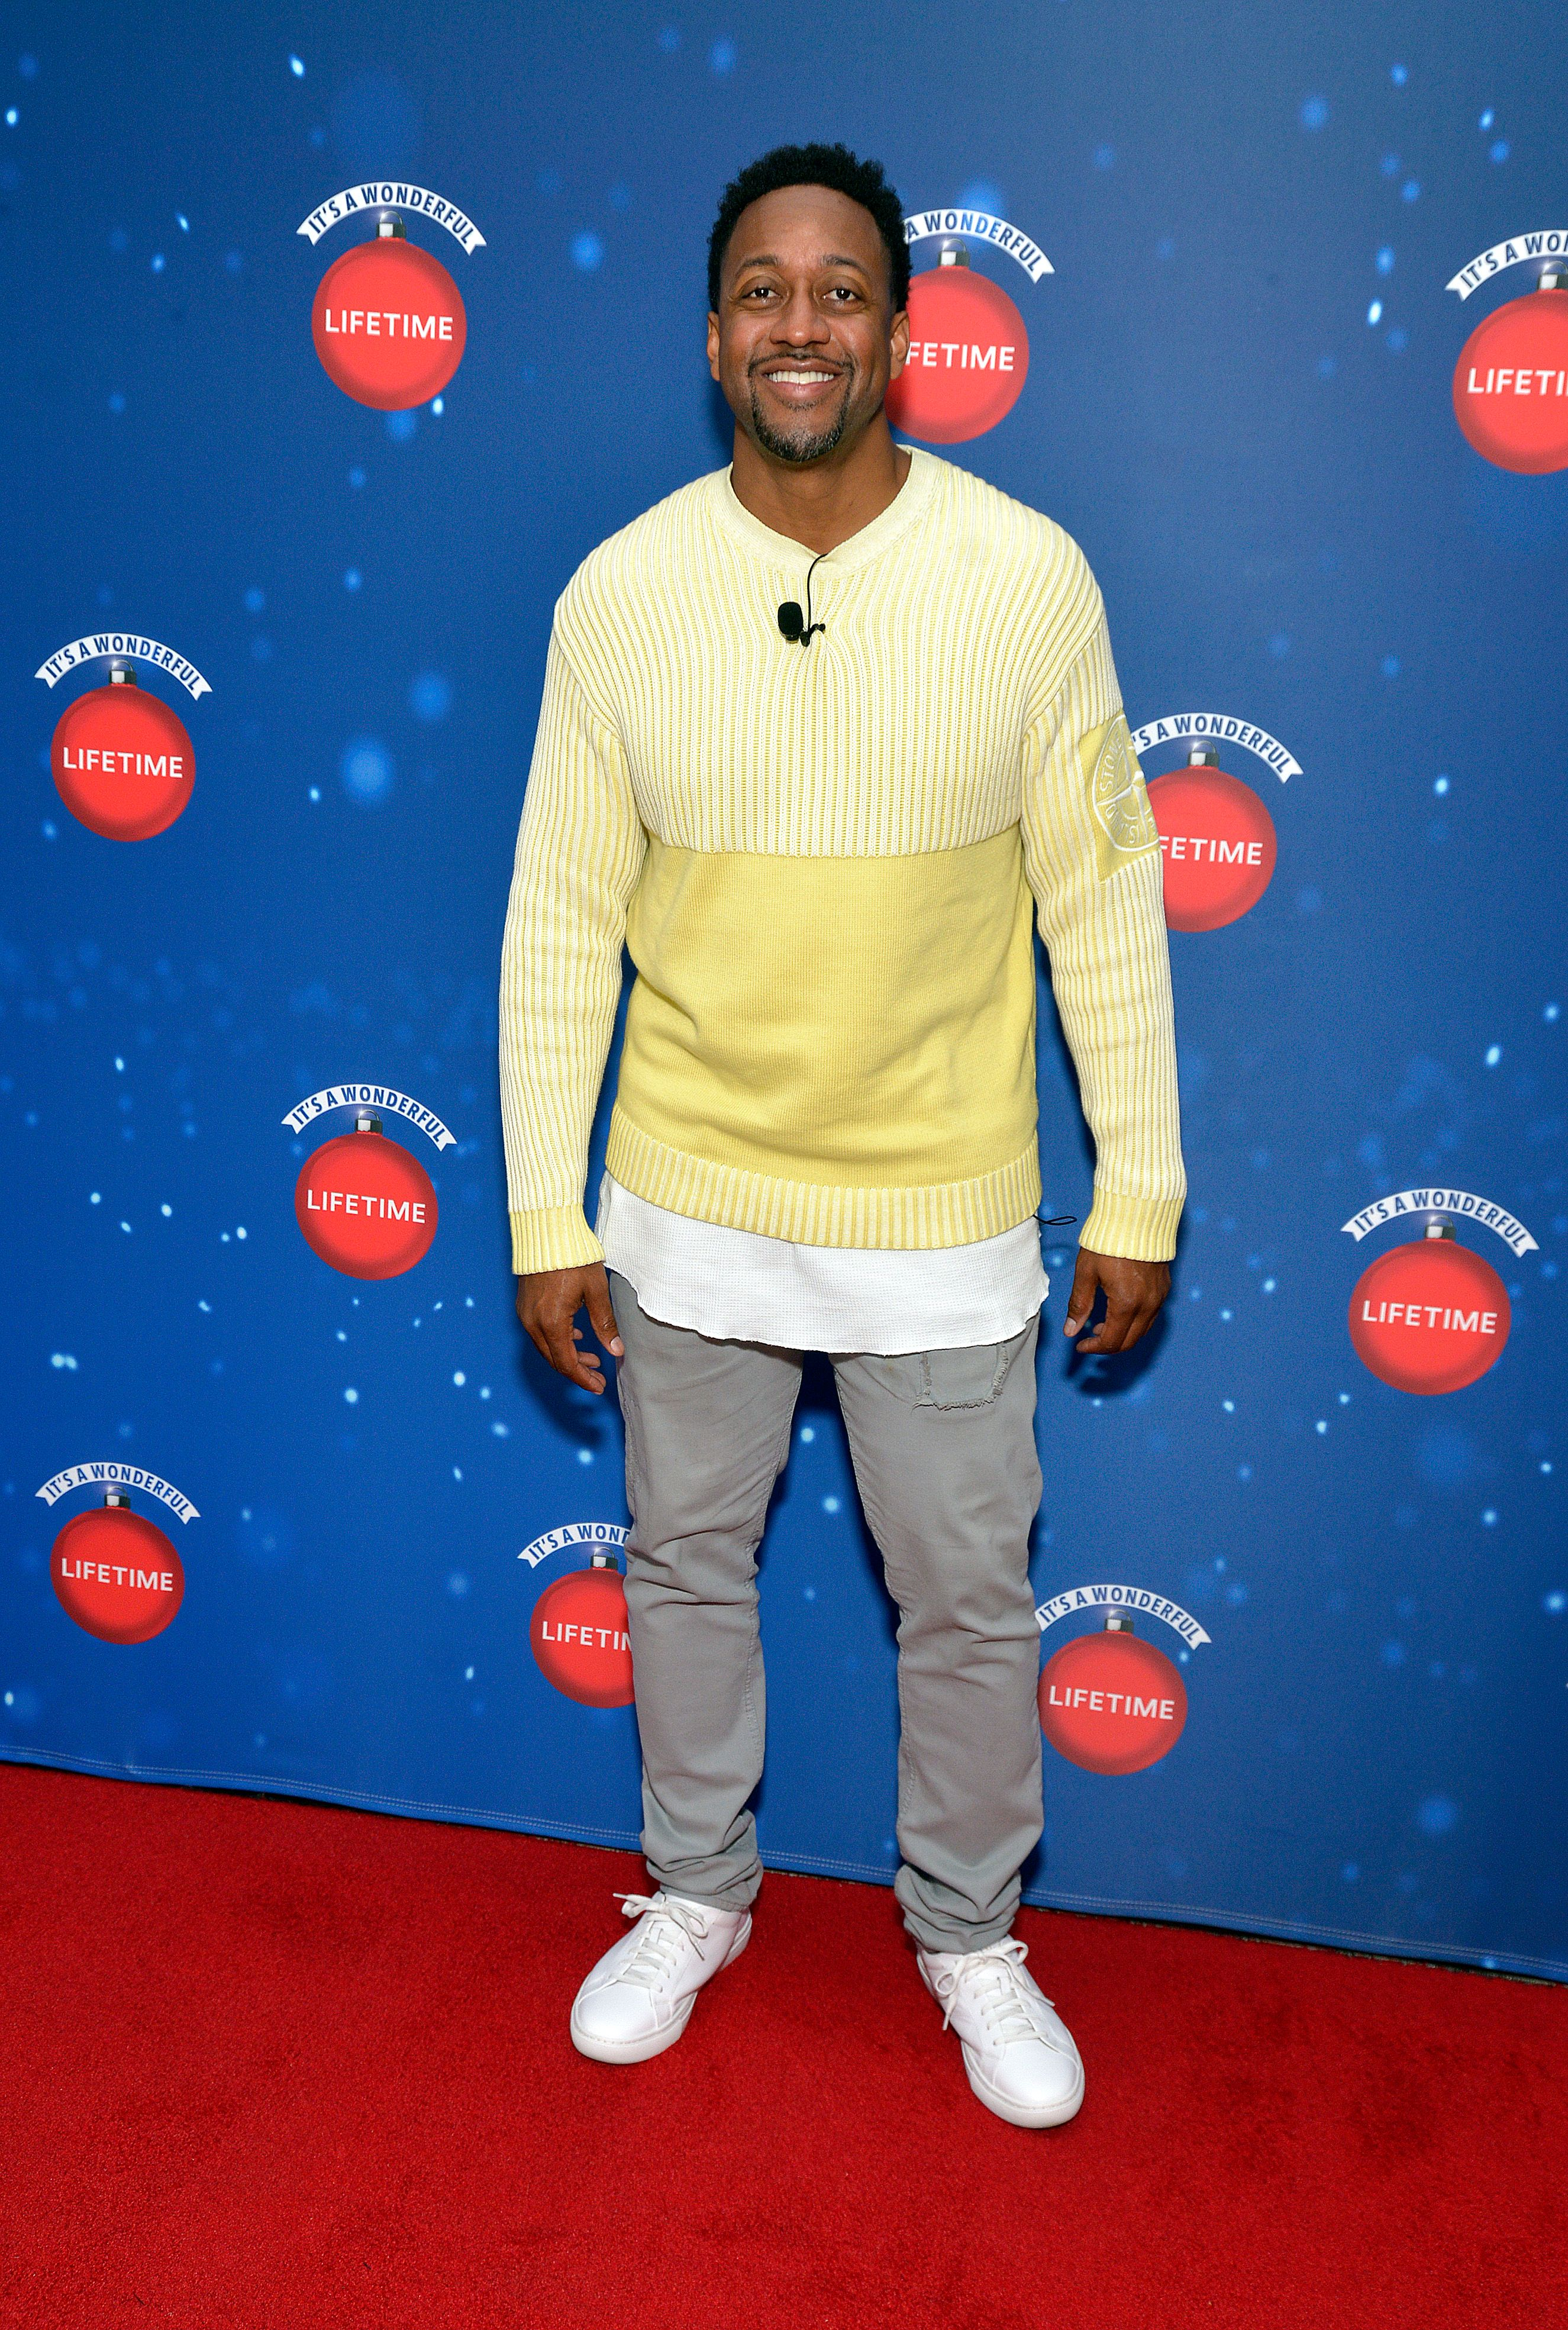 """Jaleel White during the Say """"Santa!"""" with It's A Wonderful Lifetime photo experience at Glendale Galleria on November 09, 2019 in Glendale, California. 